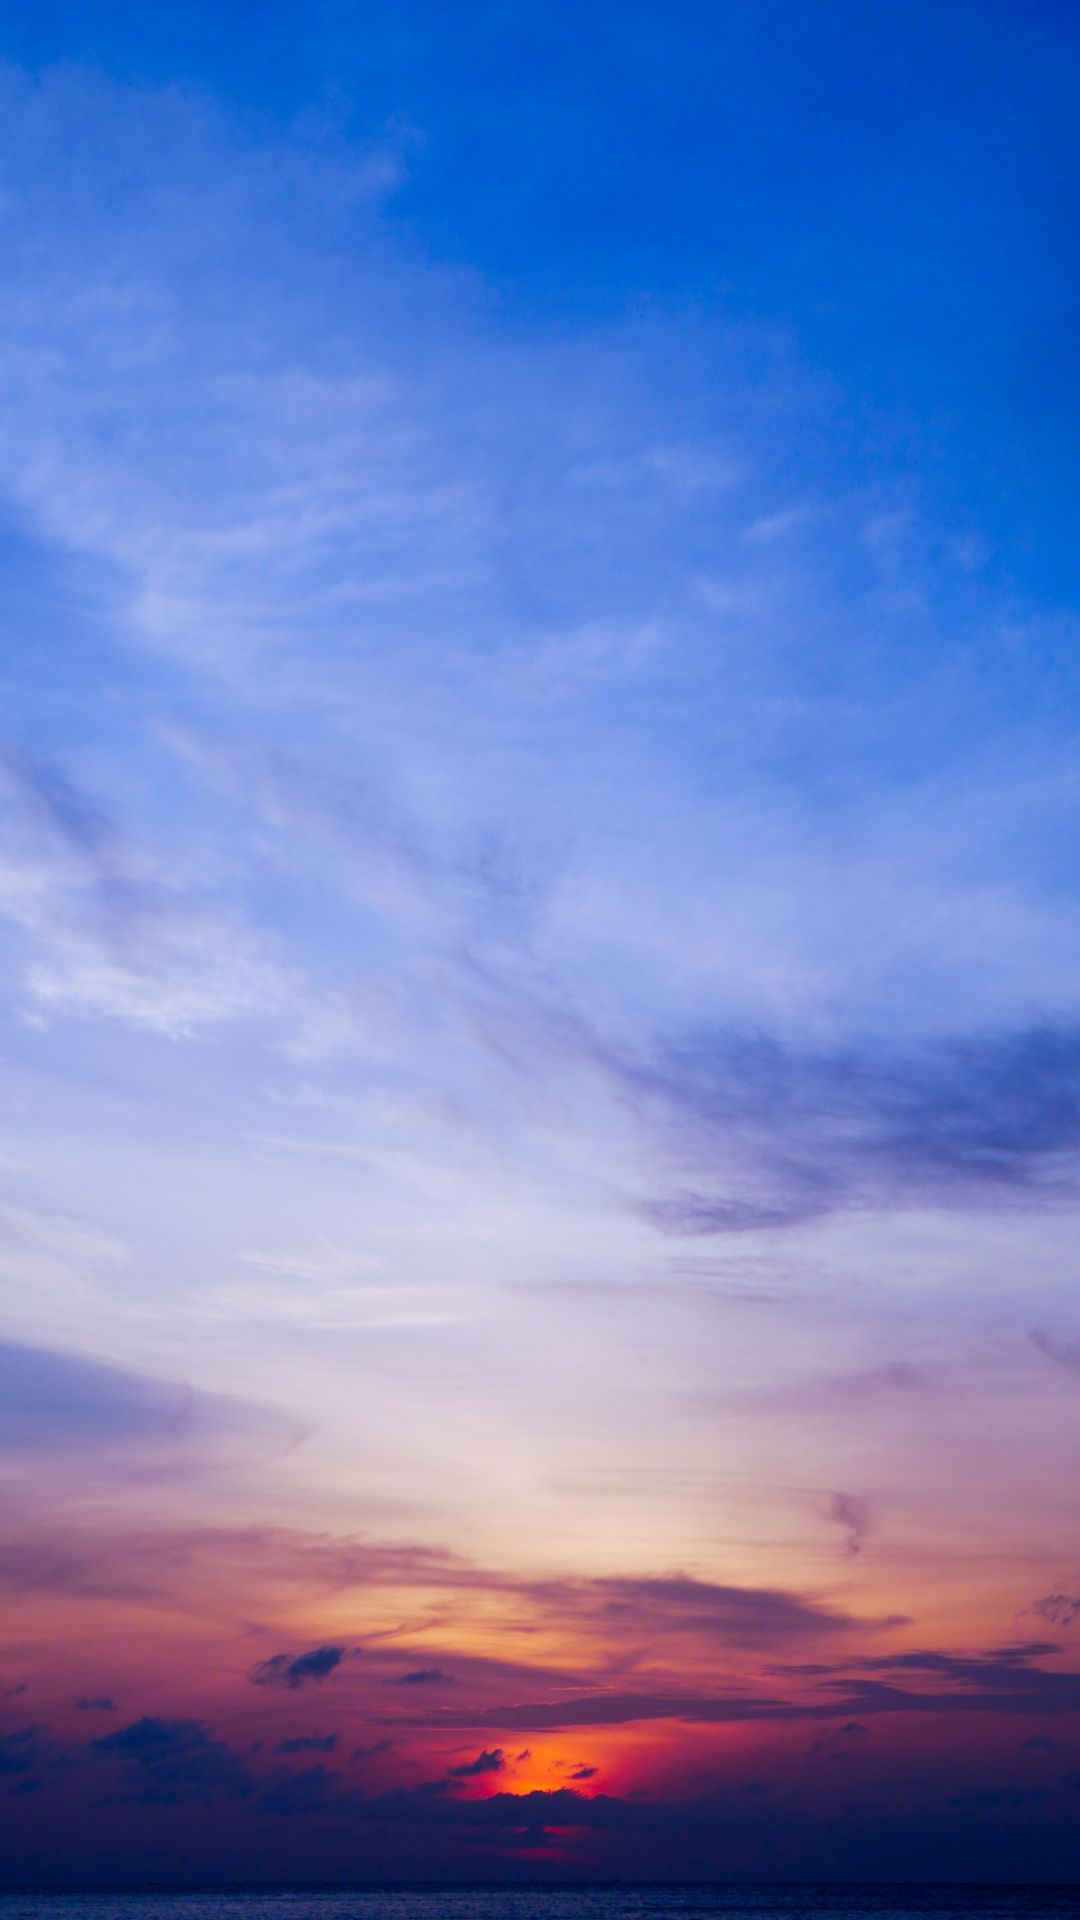 Sunset Colorful Sky Wallpaper Nature Iphone Wallpaper Iphone